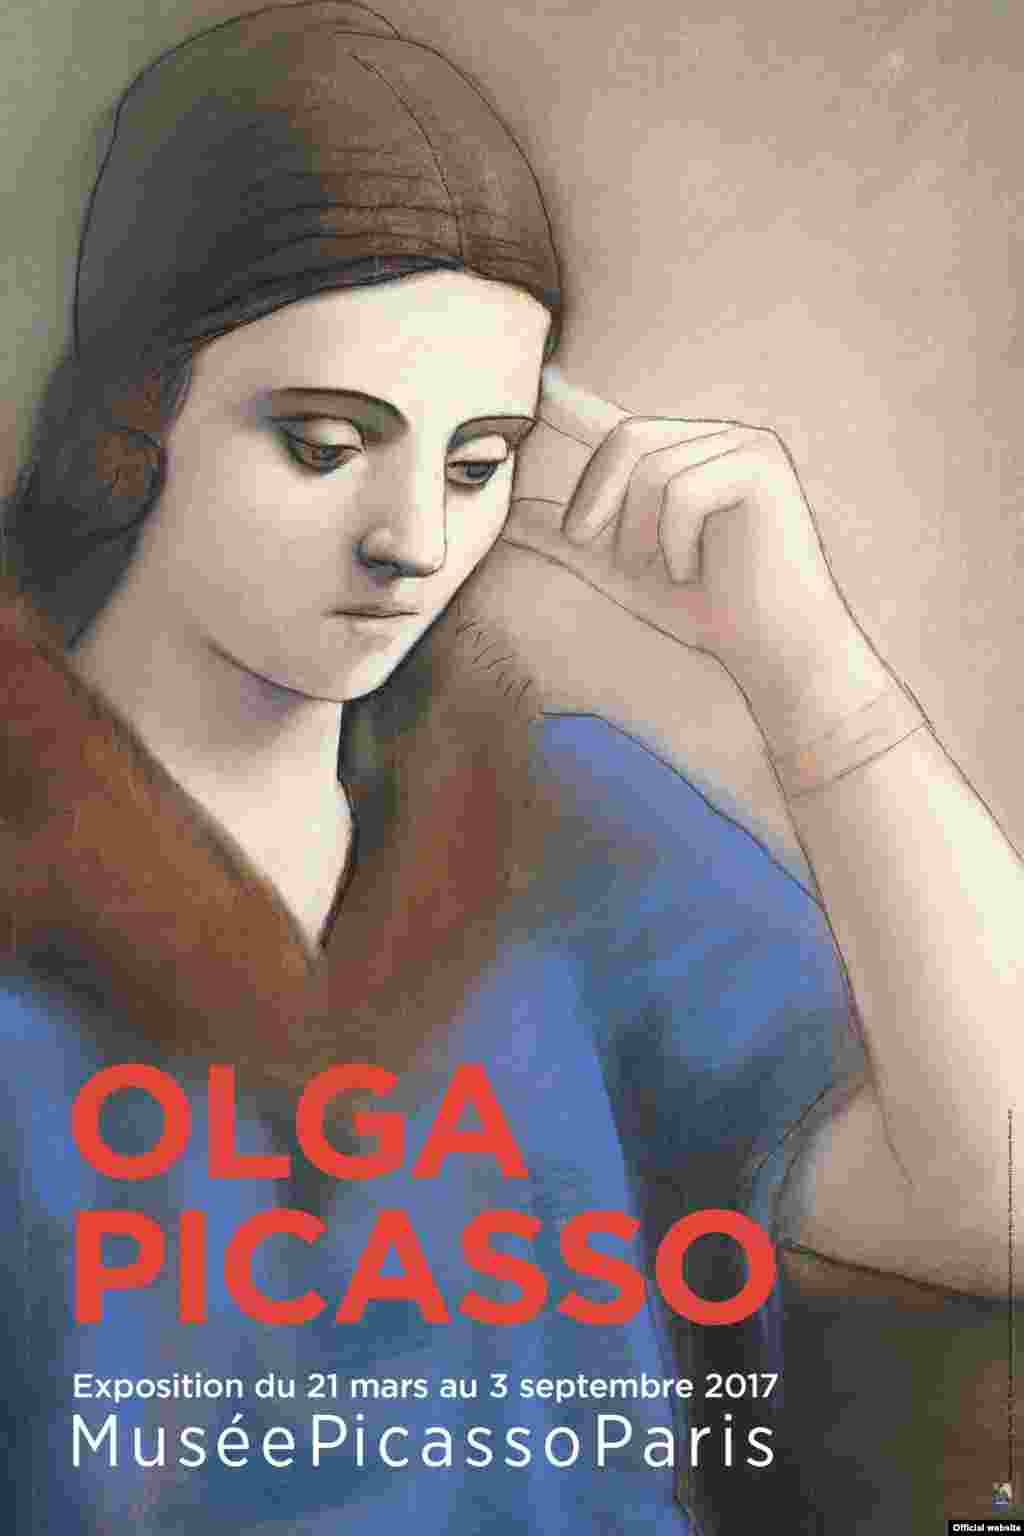 Olga gînditoare, Paris, iarna 1923. Musée national Picasso-Paris. Dation Pablo Picasso, 1979. MP993 Droit auteur : ©Succession Picasso, 2017. Crédit photo : ©RMN-Grand Palais (Musée national Picasso-Paris) / Mathieu Rabeau. Afișul expoziției.